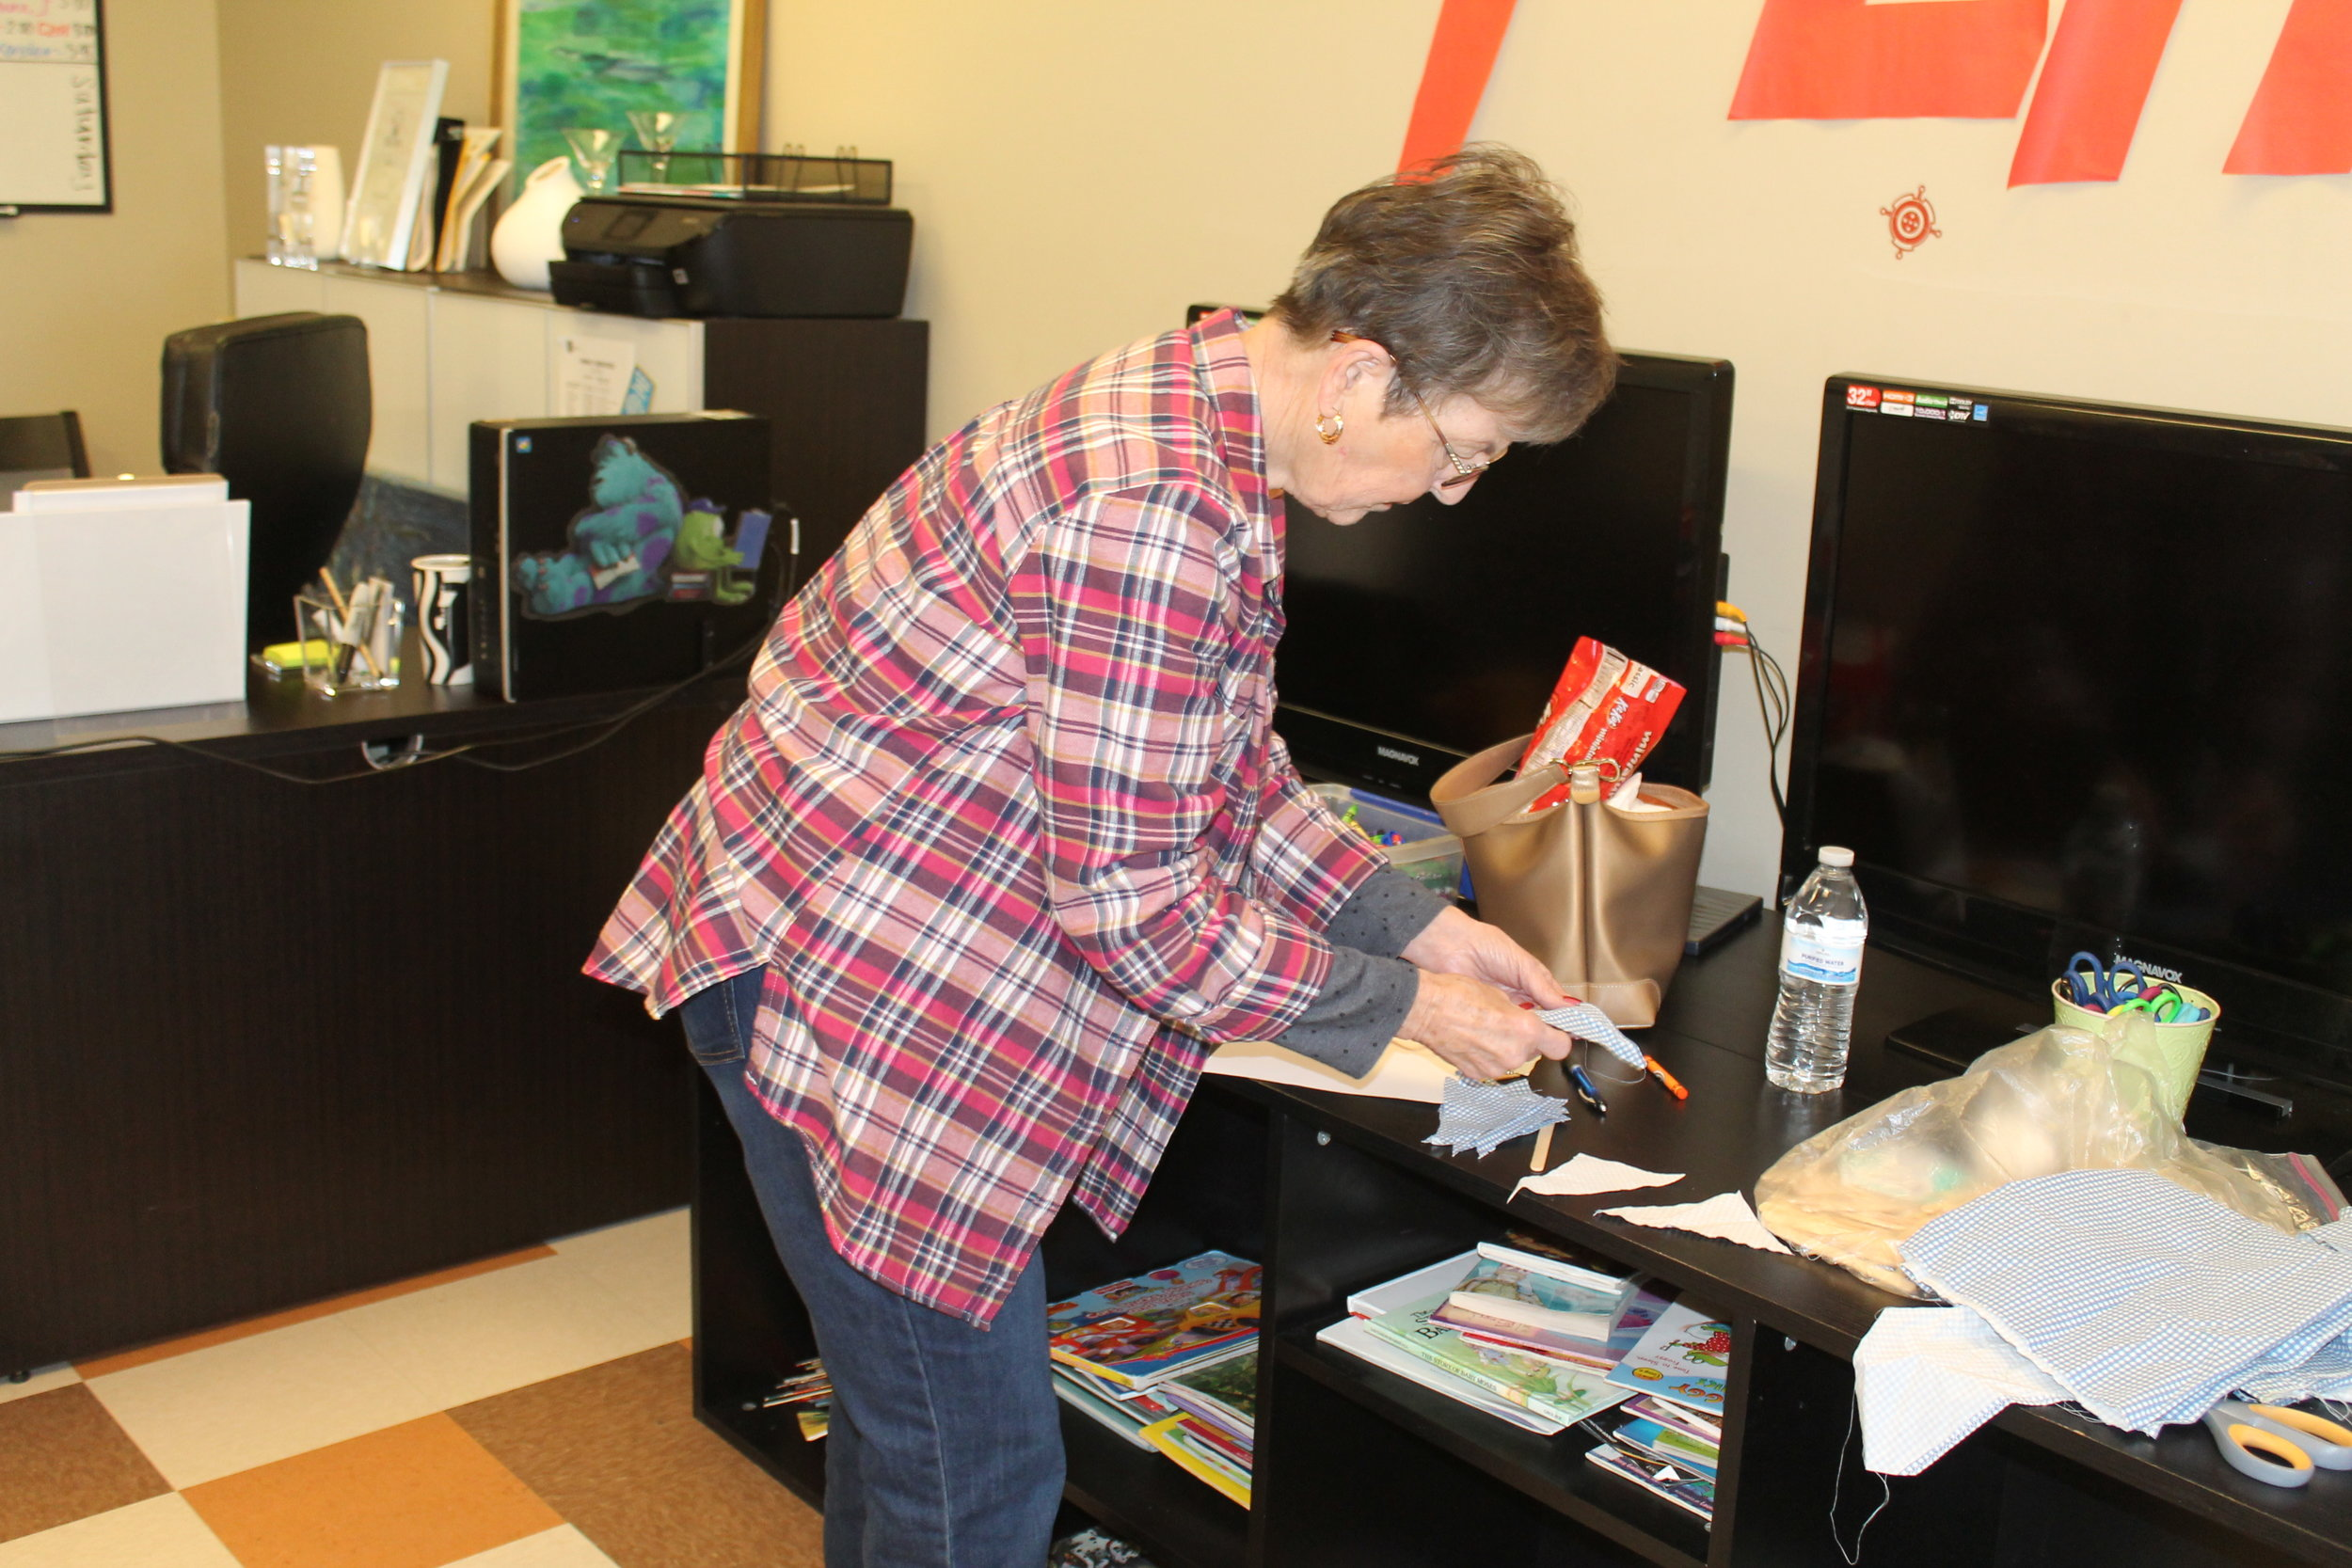 Hero of the day: June Pomeroy-thanks for being a hero to the kids at the Salvation Army Homeless Shelter this Saturday.